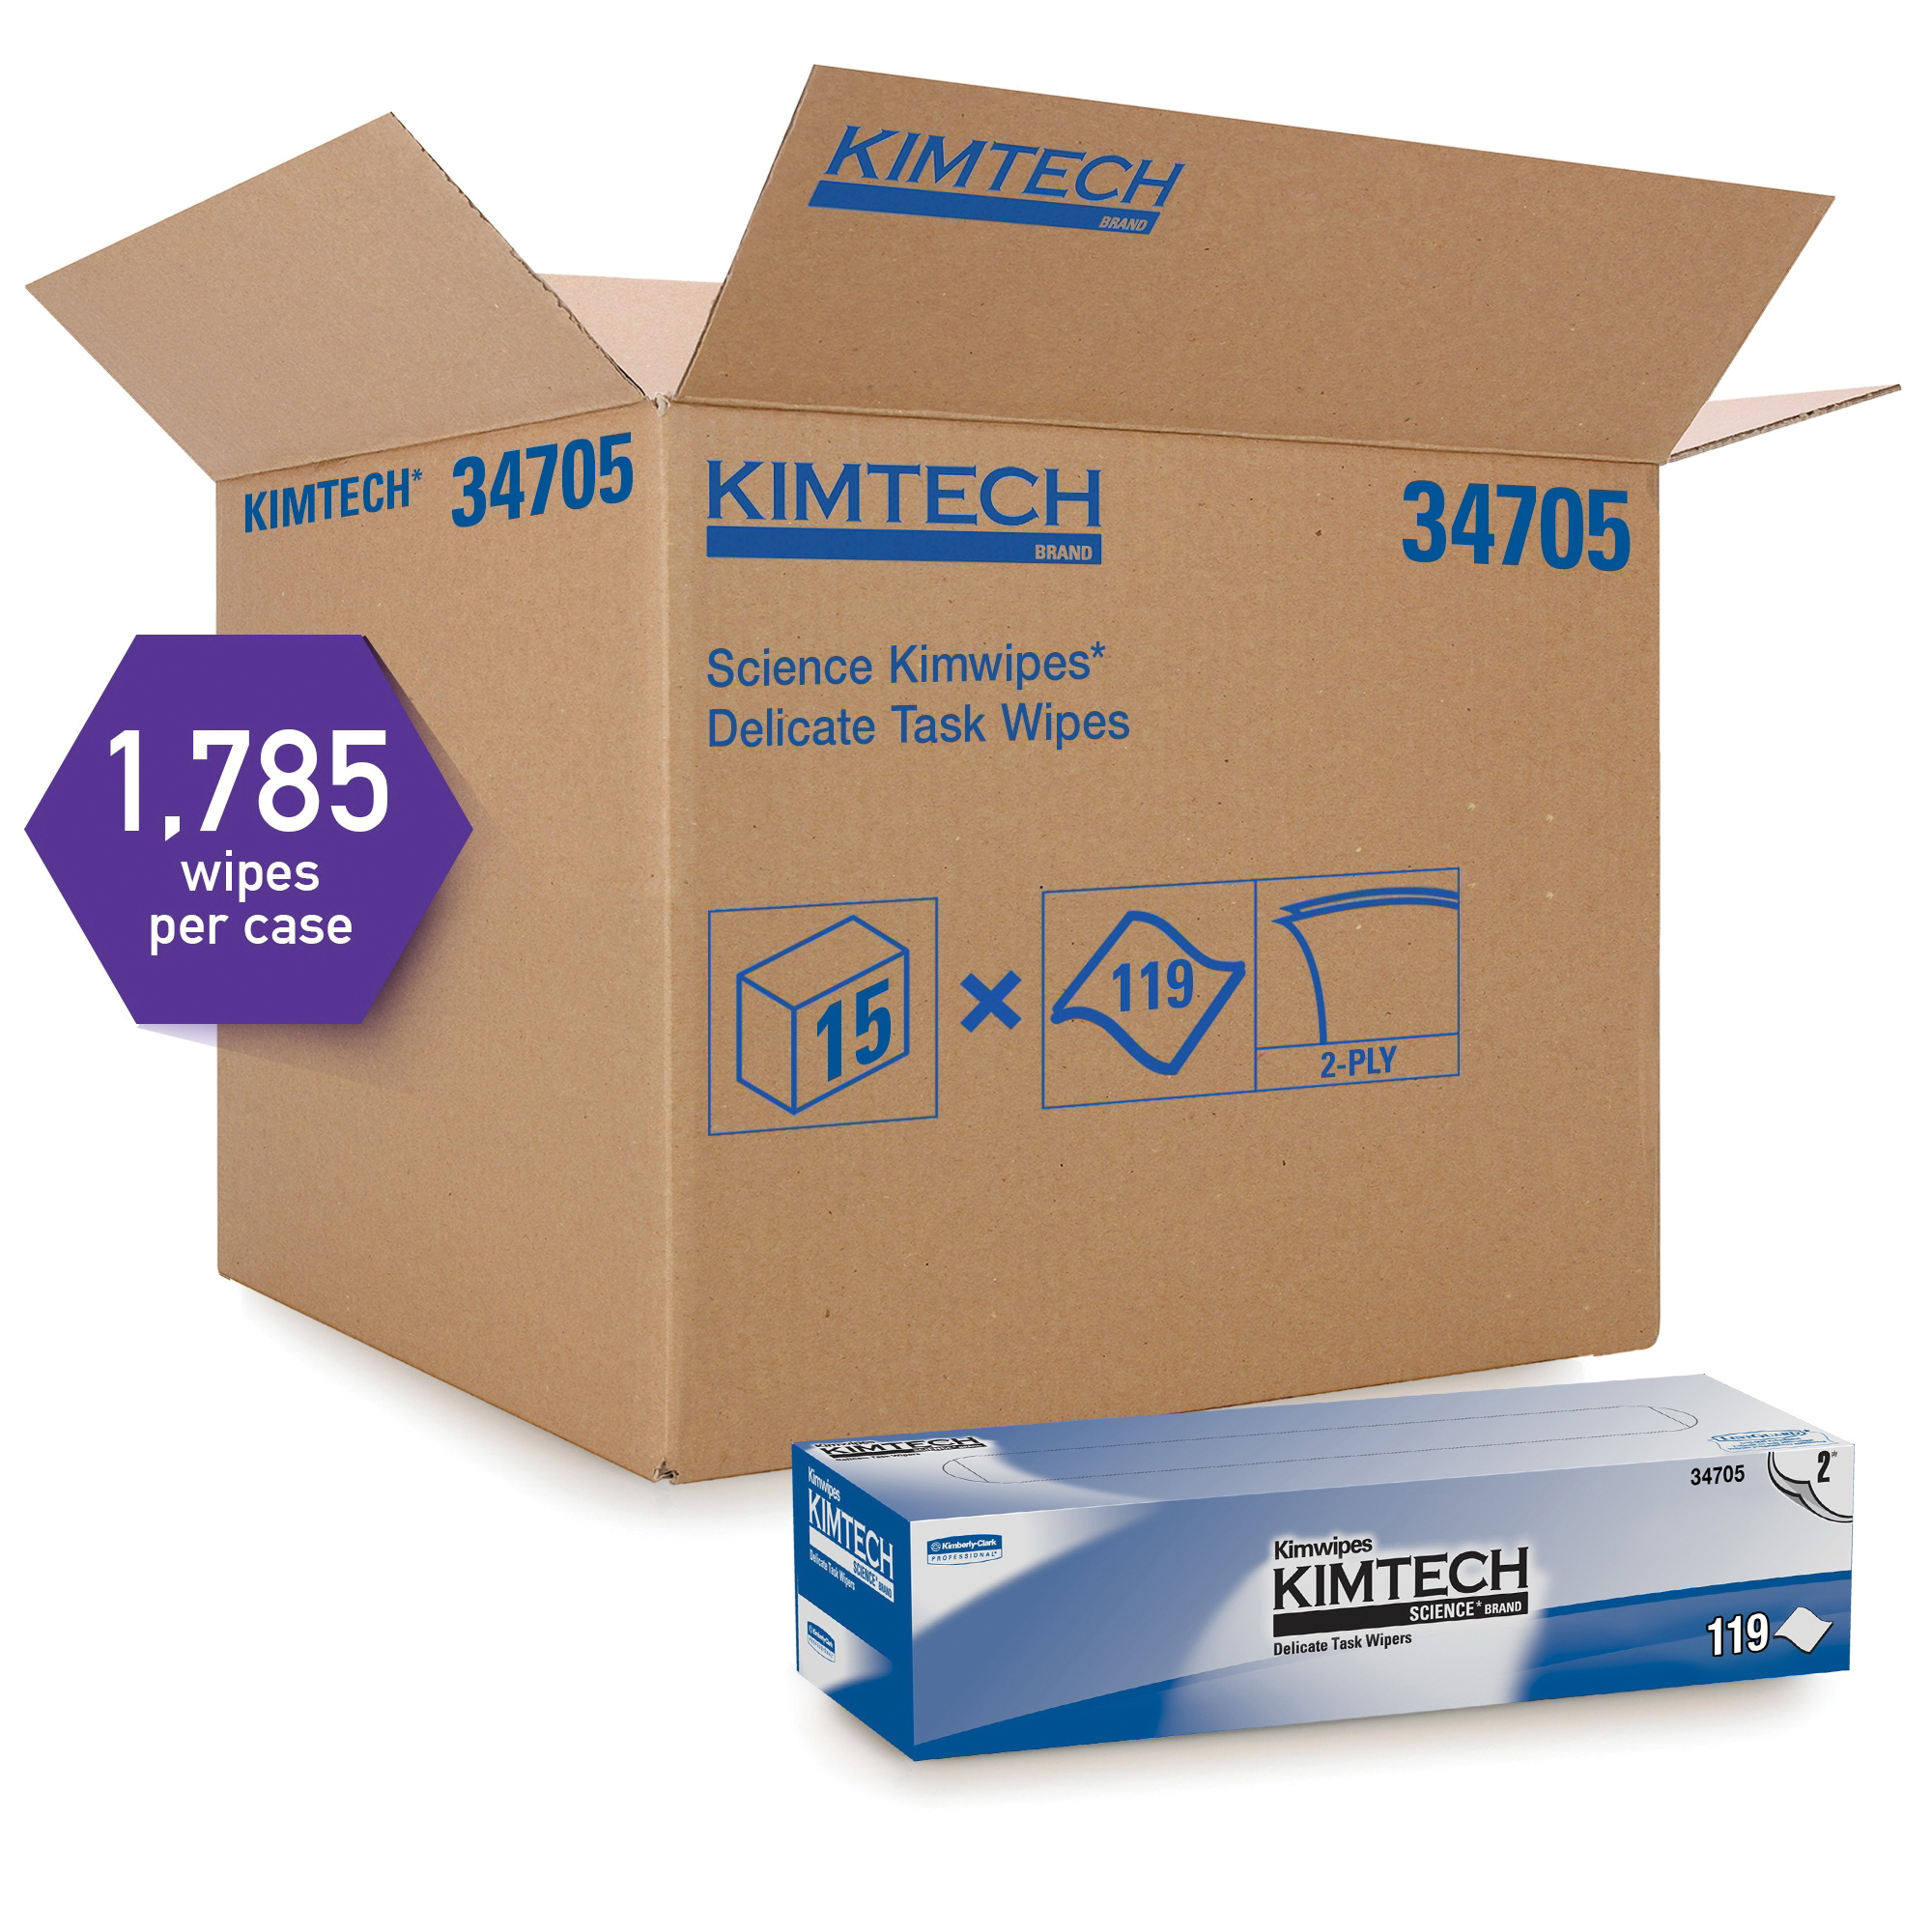 Kimtech Science* Kimwipes* 34644 Dual Locking Lens Cleaning Station, Non-Silicone Spray Solution, 16 oz Pump